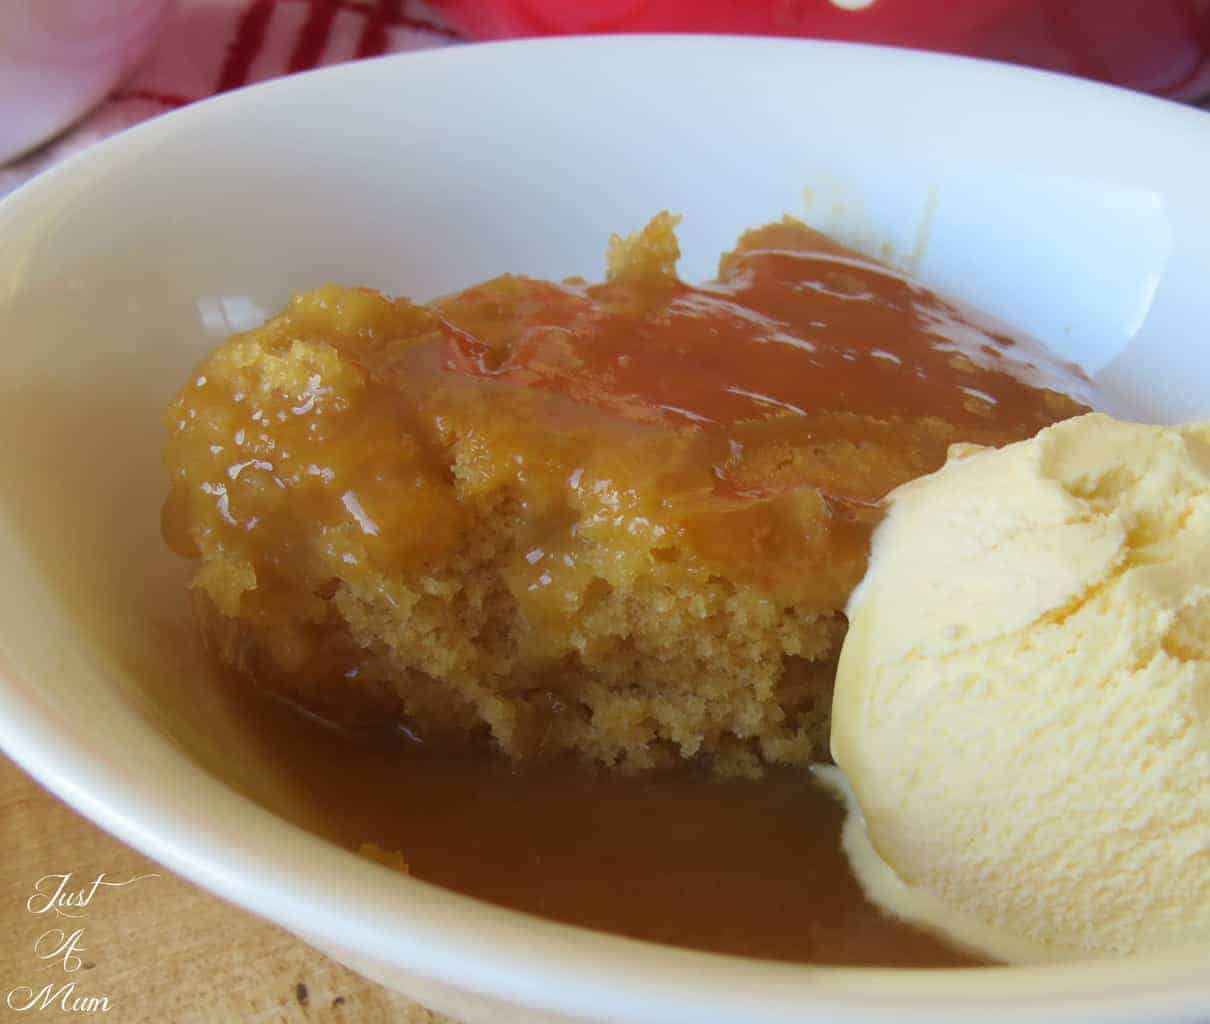 Just A Mum's Butterscotch Self-Saucing Pudding